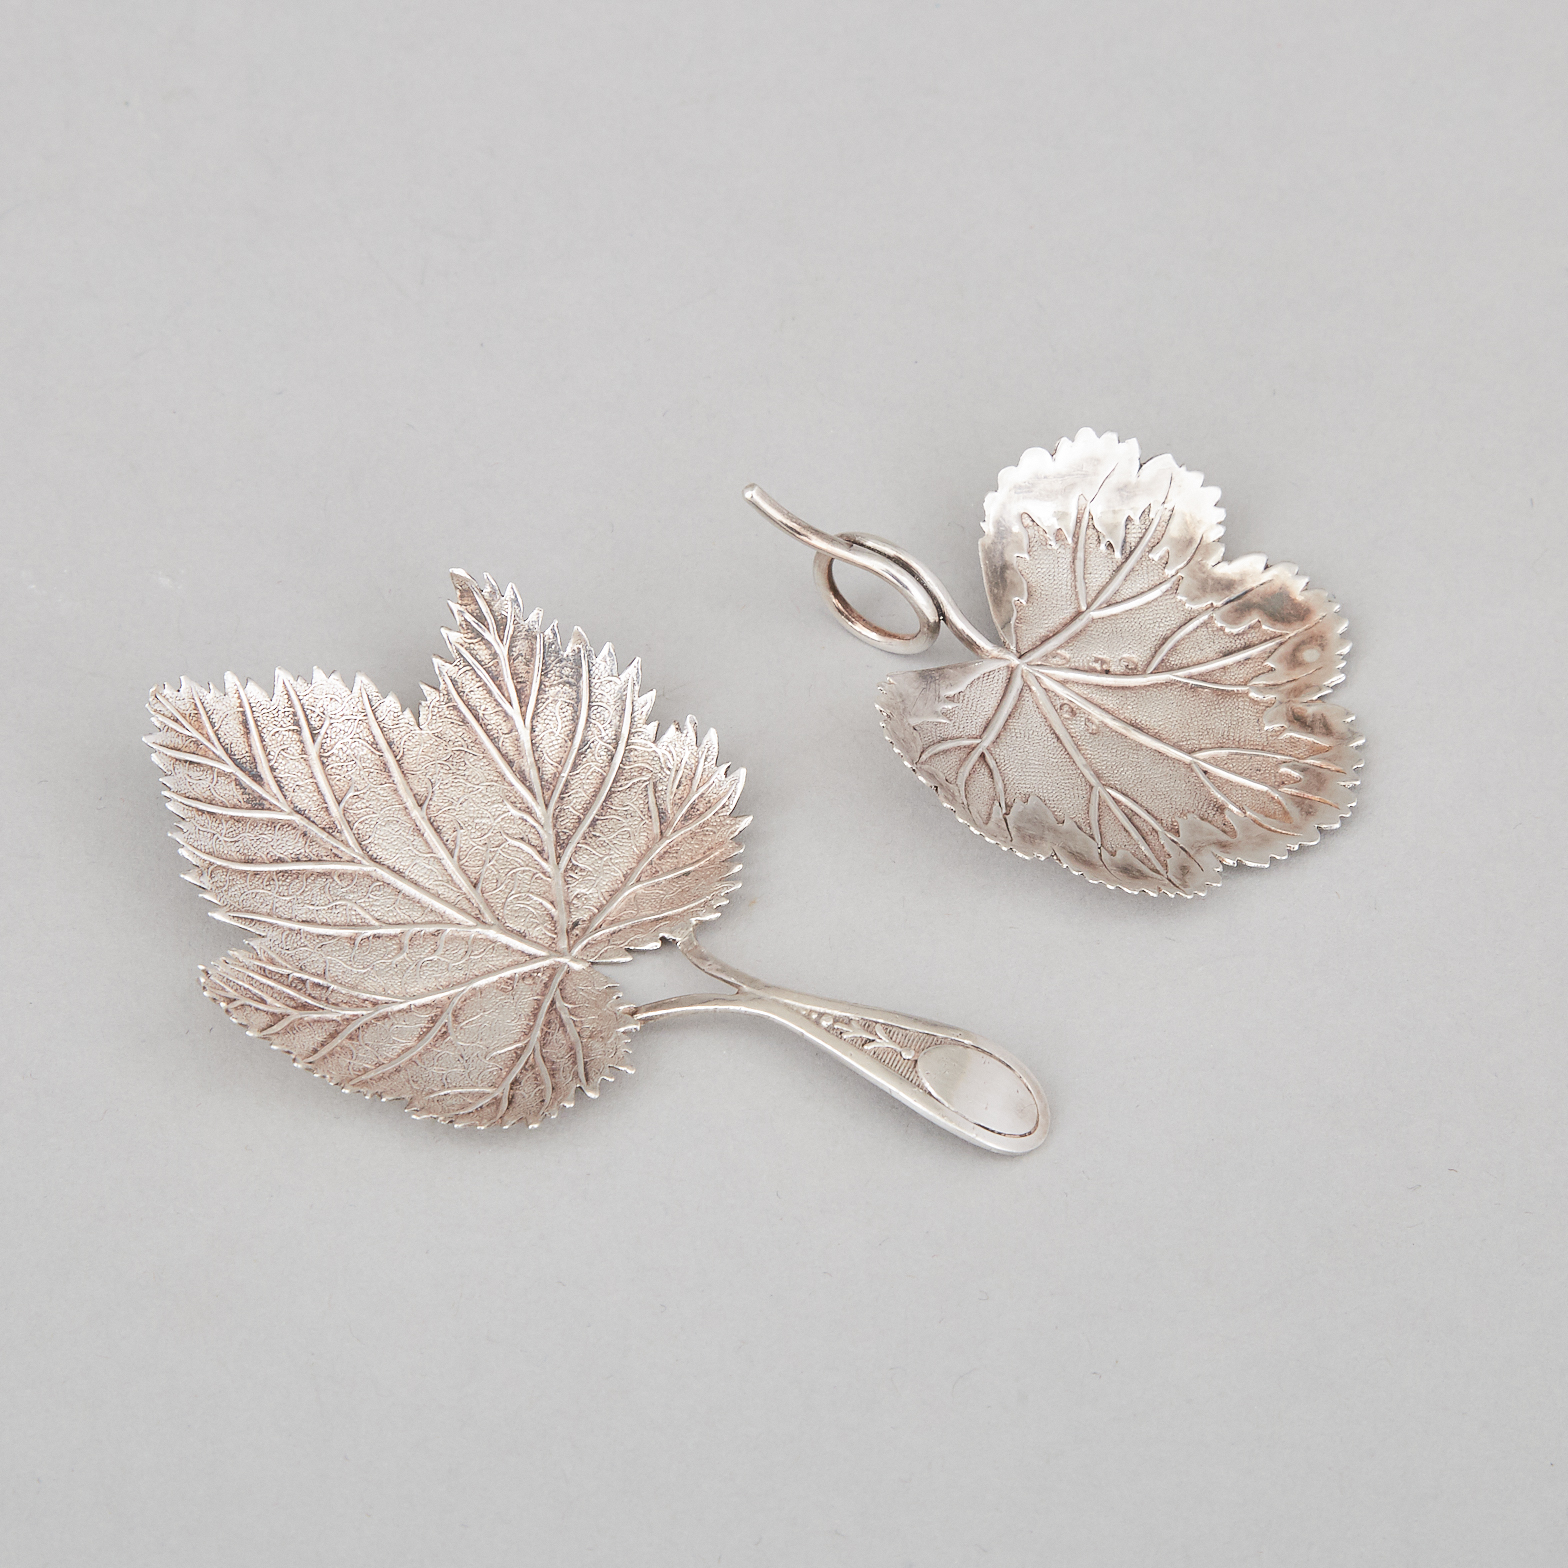 Two George III Silver Leaf Shaped Caddy Spoons, Matthew Linwood, Birmingham, 1807/08